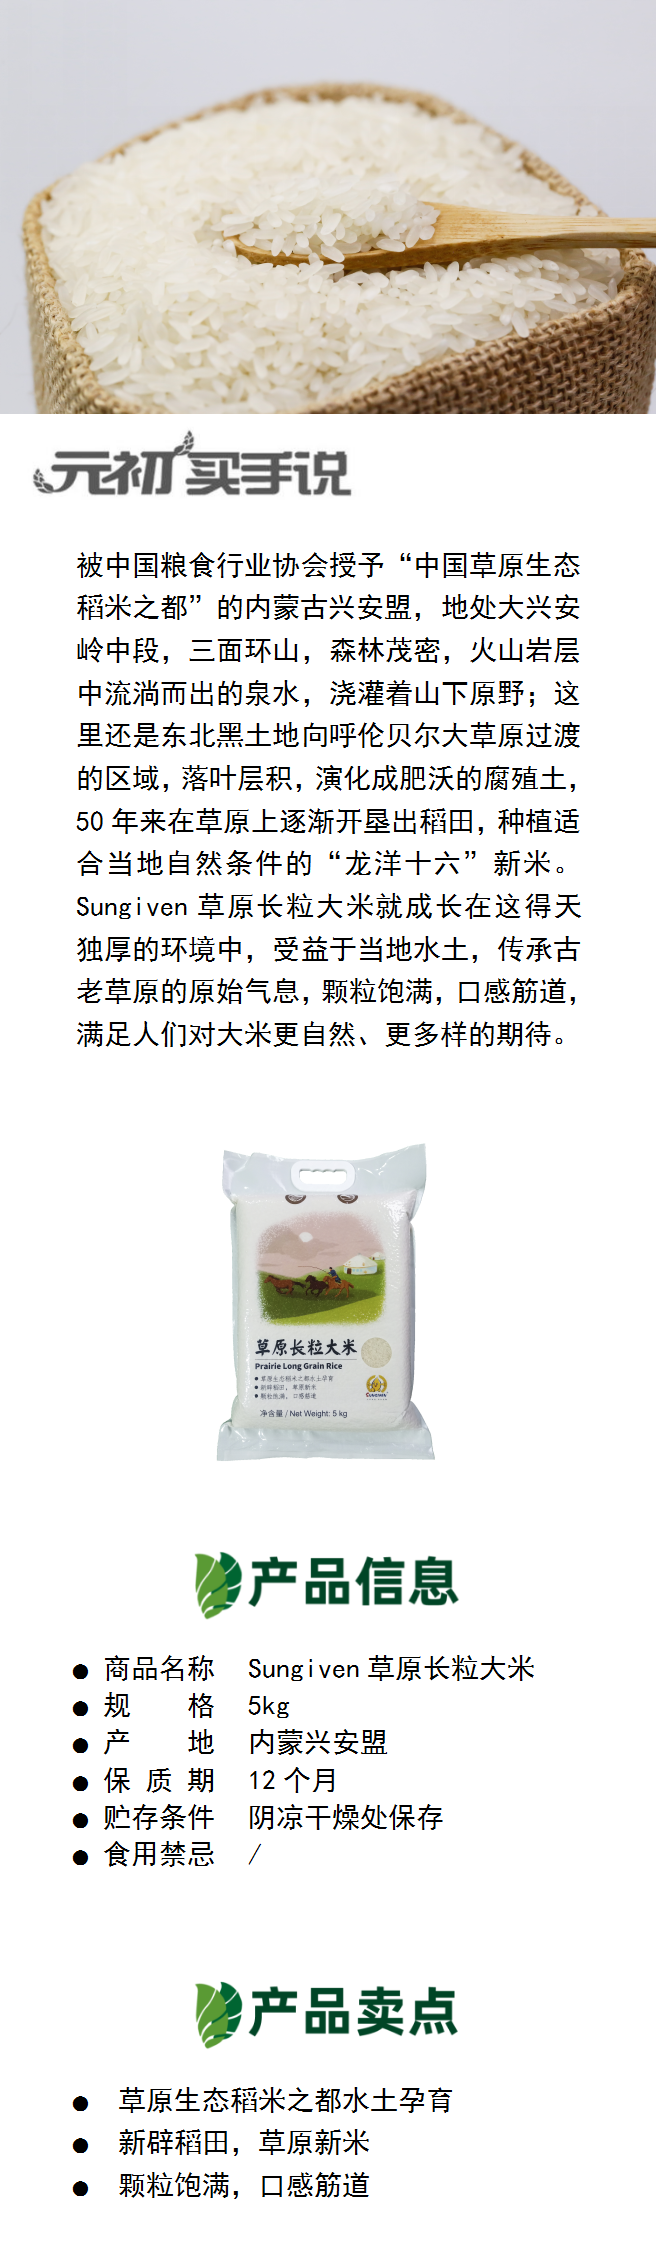 Sungiven草原长粒大米_01.png